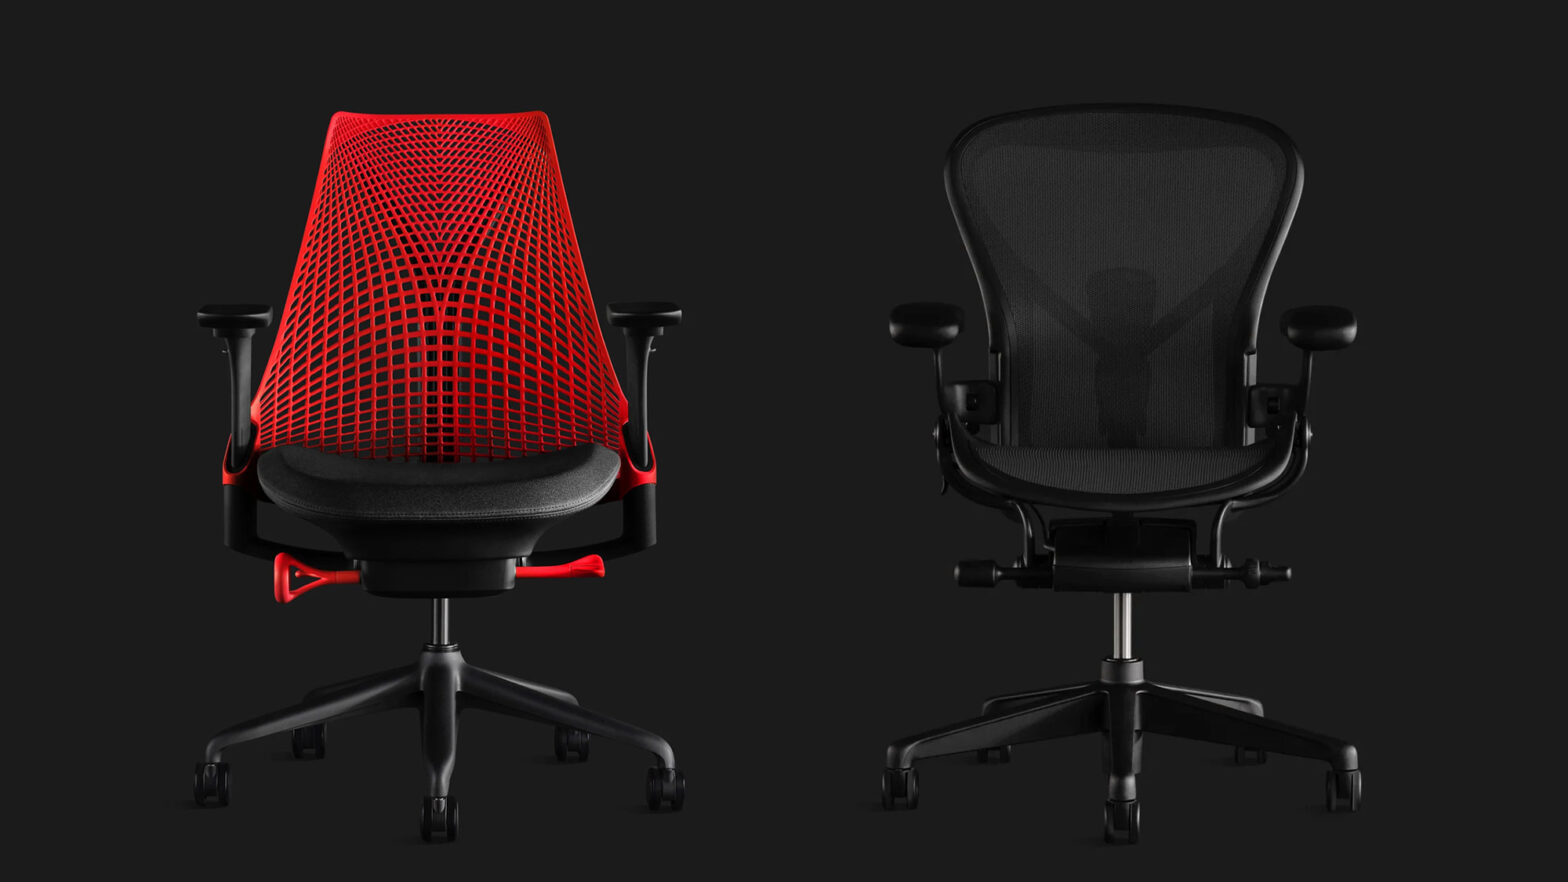 Herman Miller Special Gaming Edition Gaming Chairs